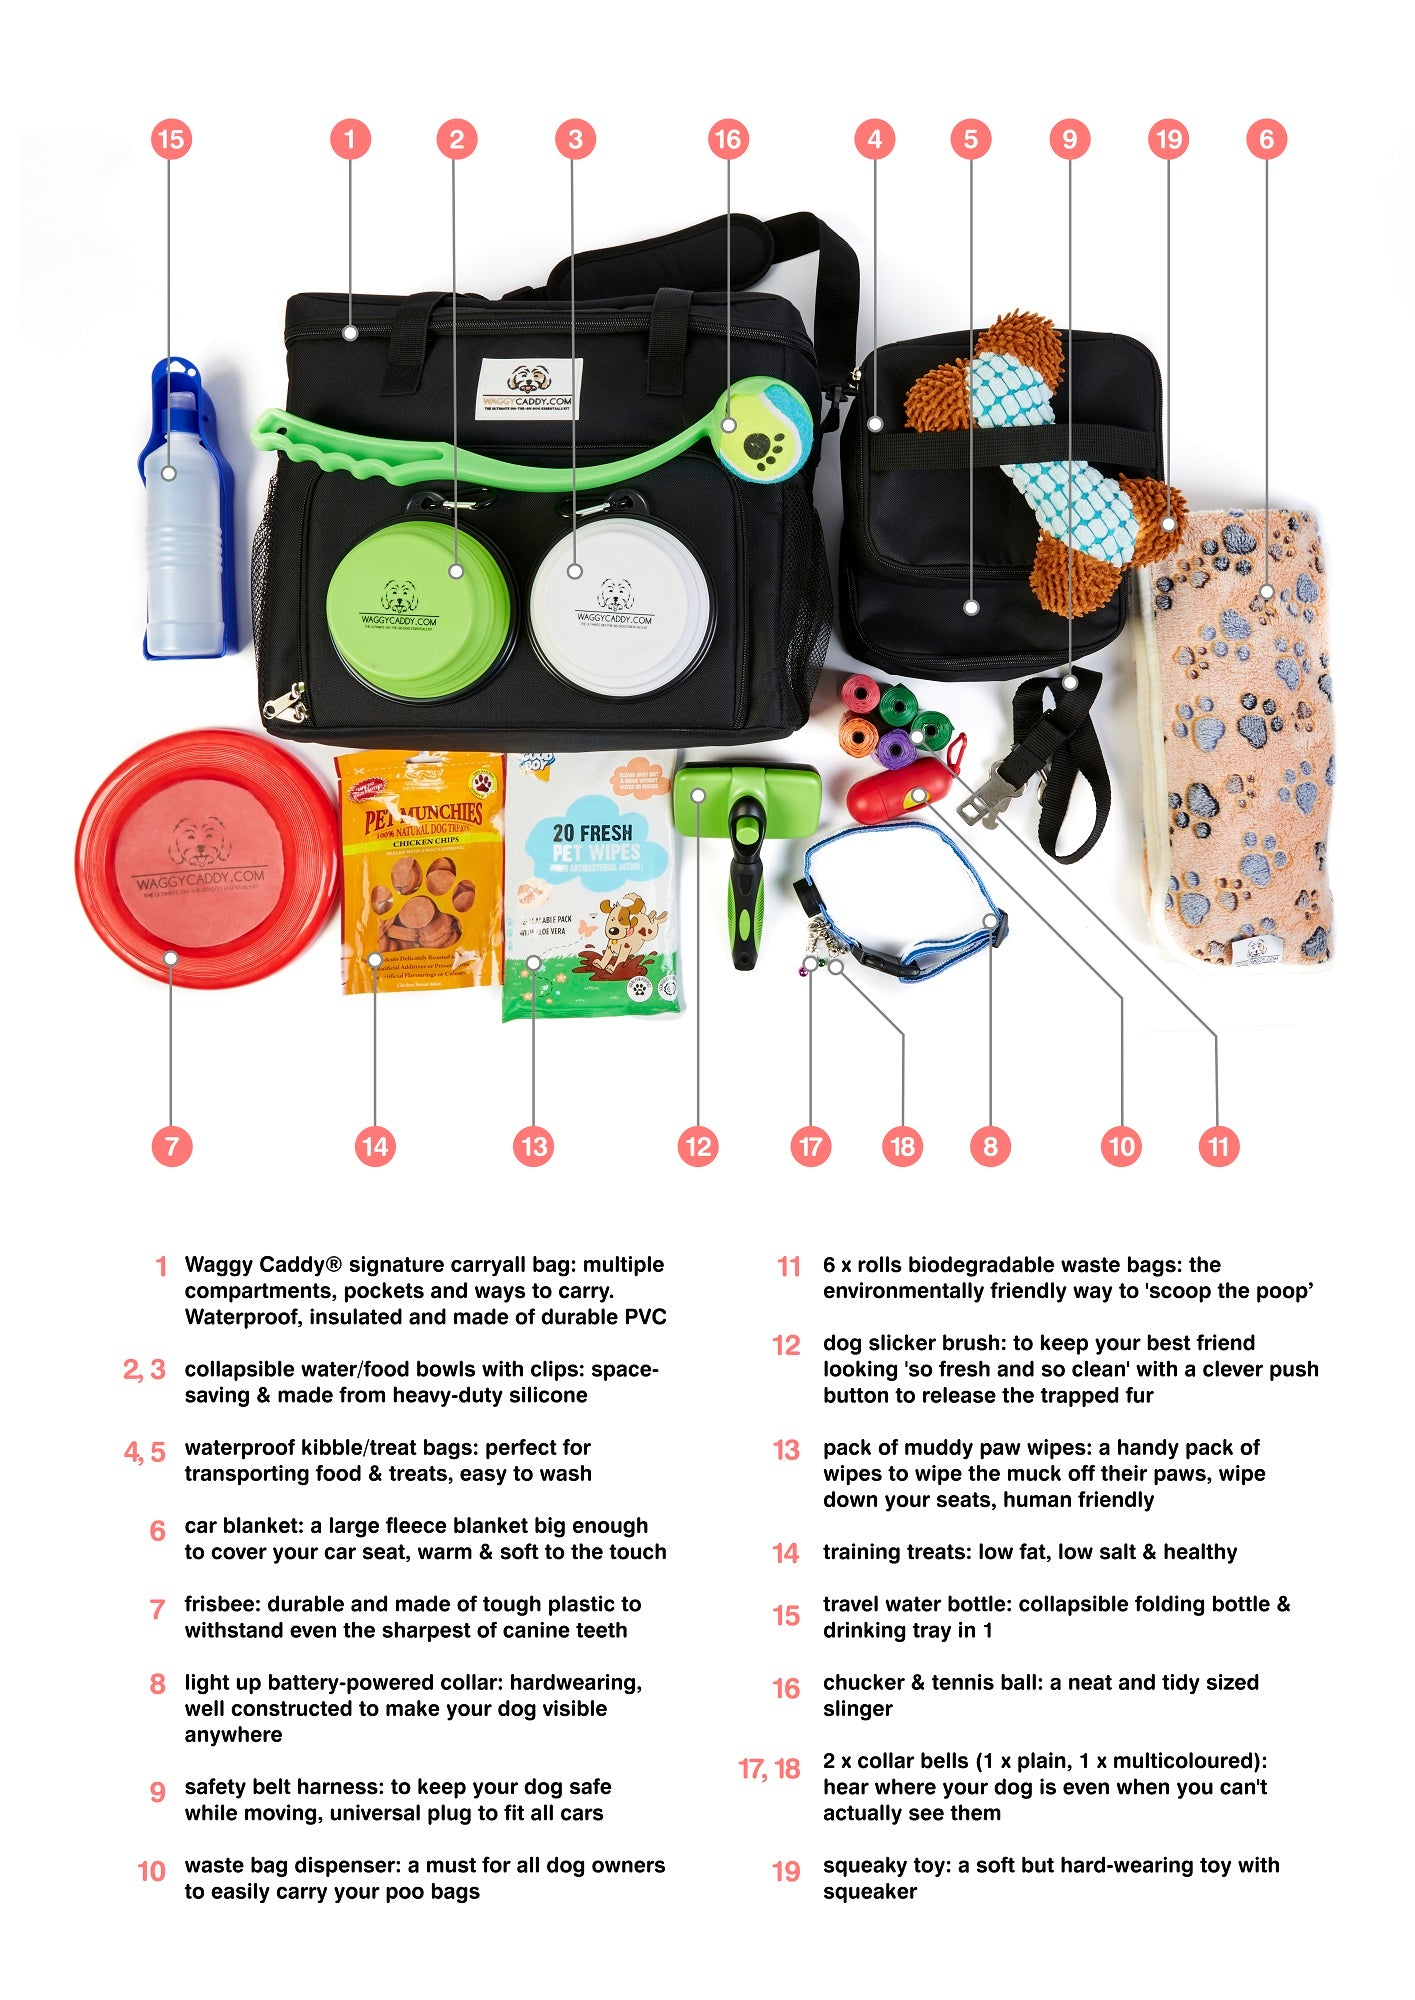 waggy caddy essentail carryall dog kit necessities